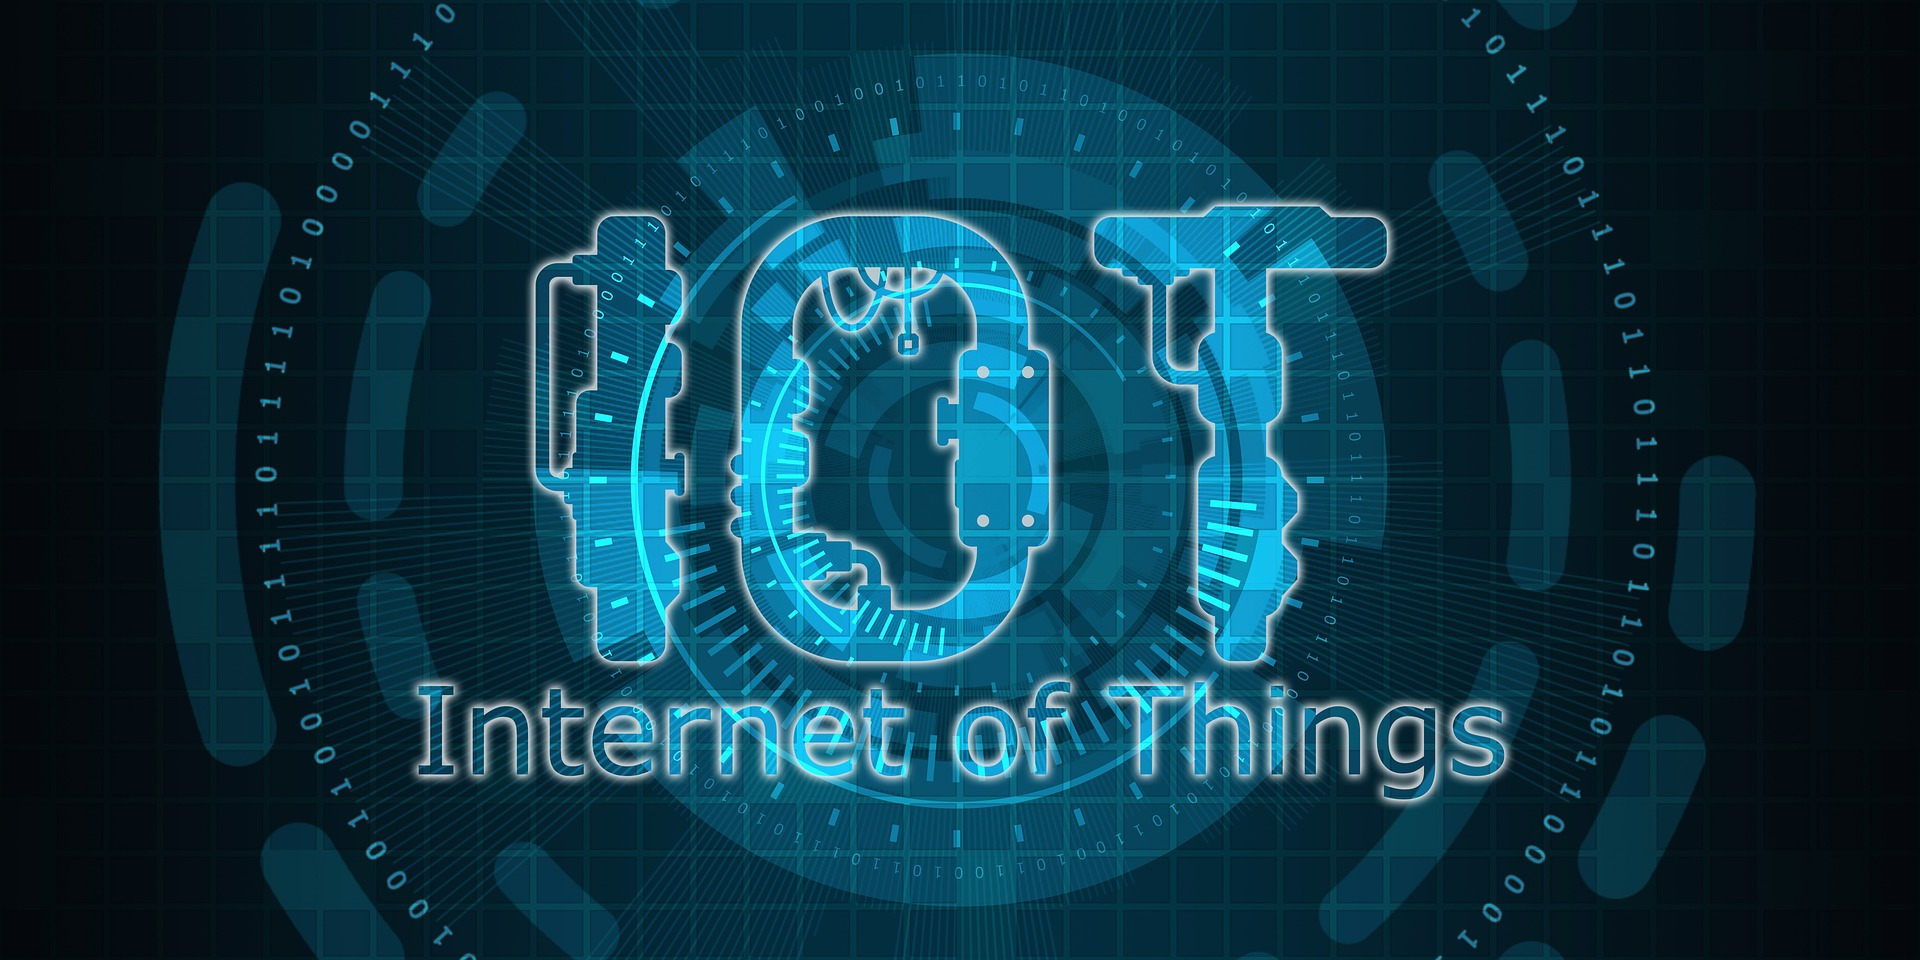 Adapt to New IoT Requirements by Partnering with Competent Internet of Things Companies